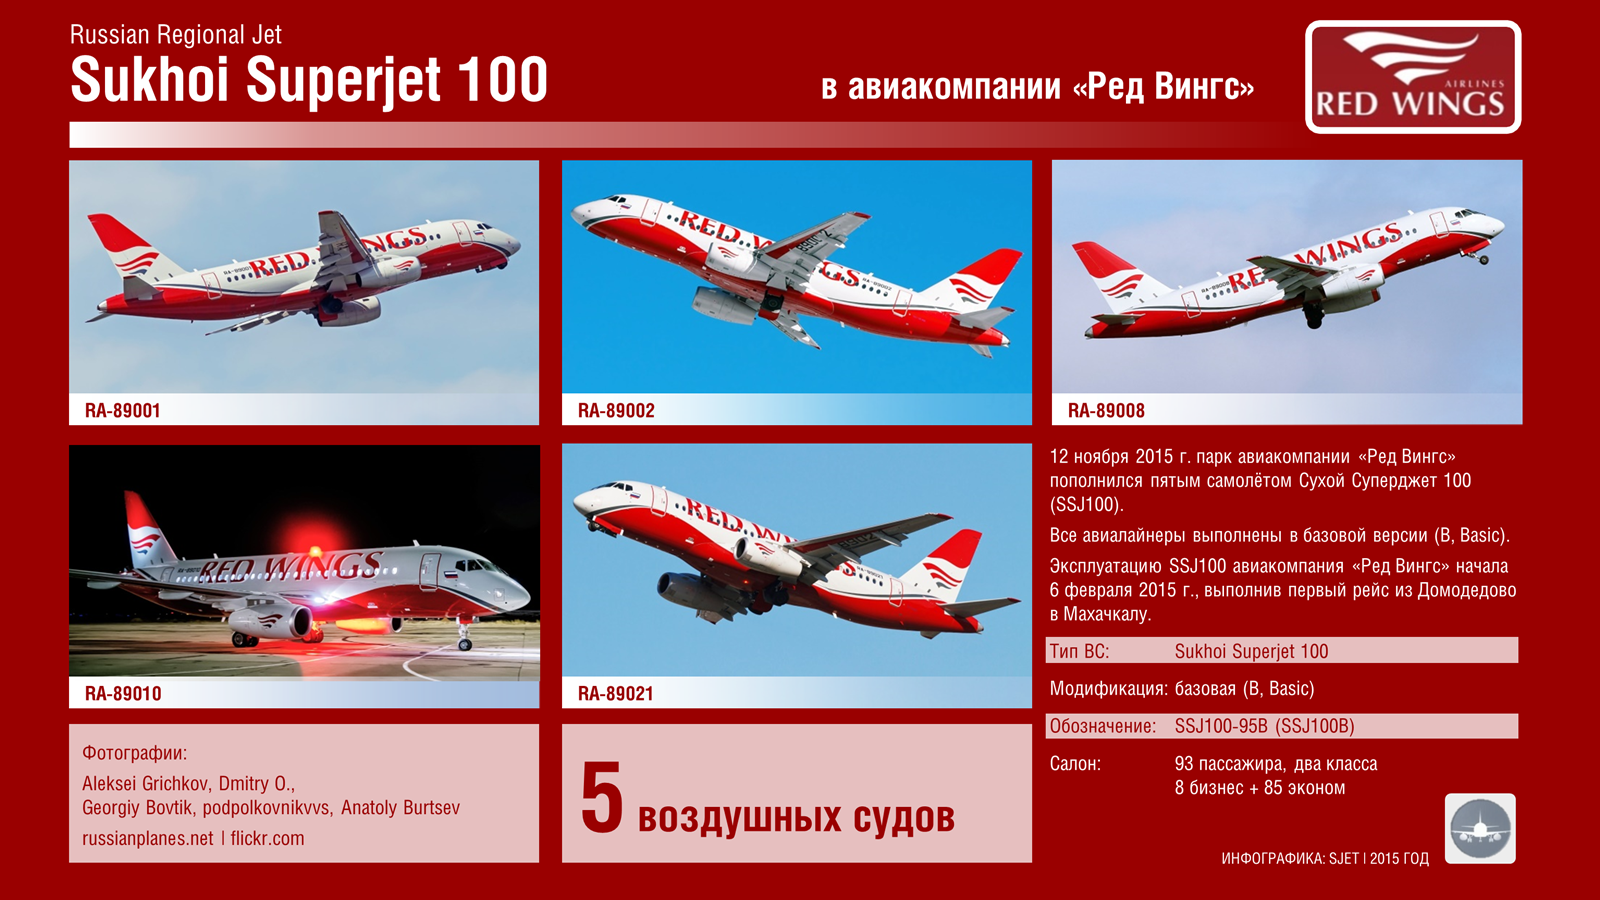 Sukhoi%20Superjet%20SSJ100%20RRJ95%20Red%20Wings%20Airlines.png